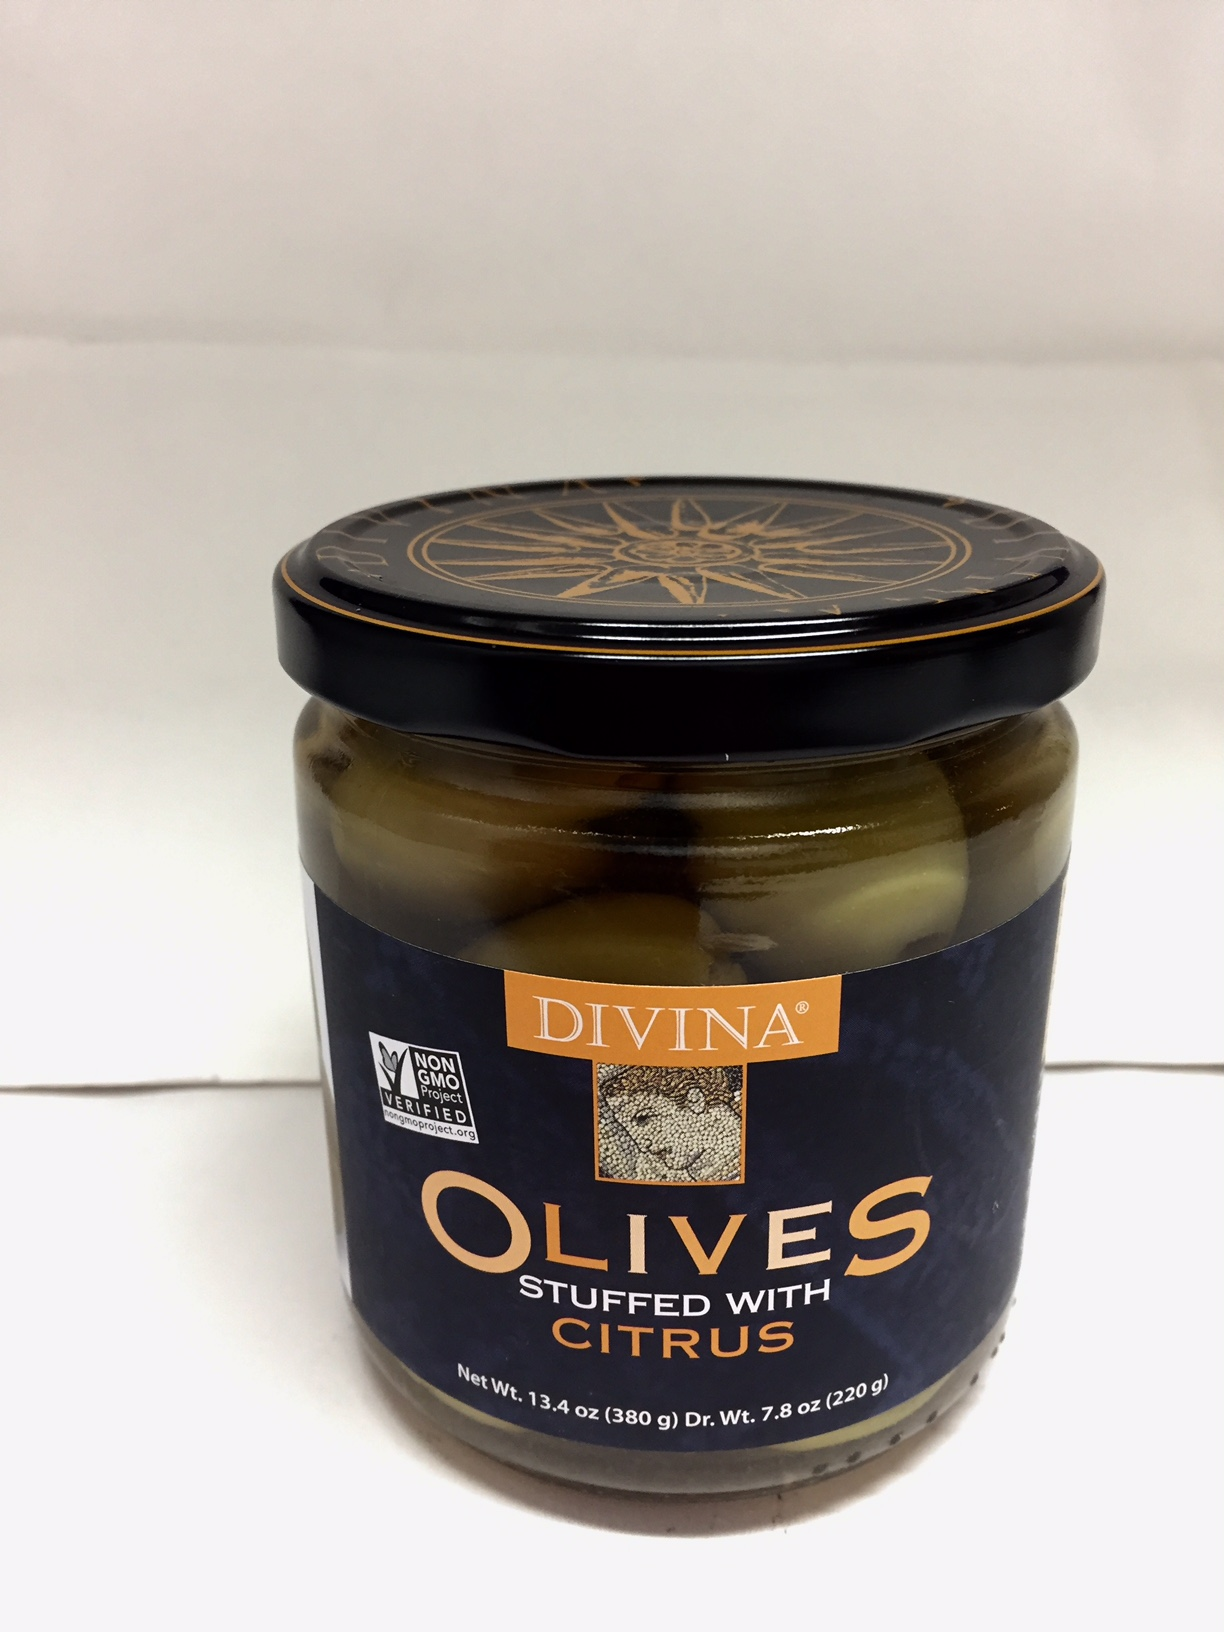 Olives Stuffed with Citrus